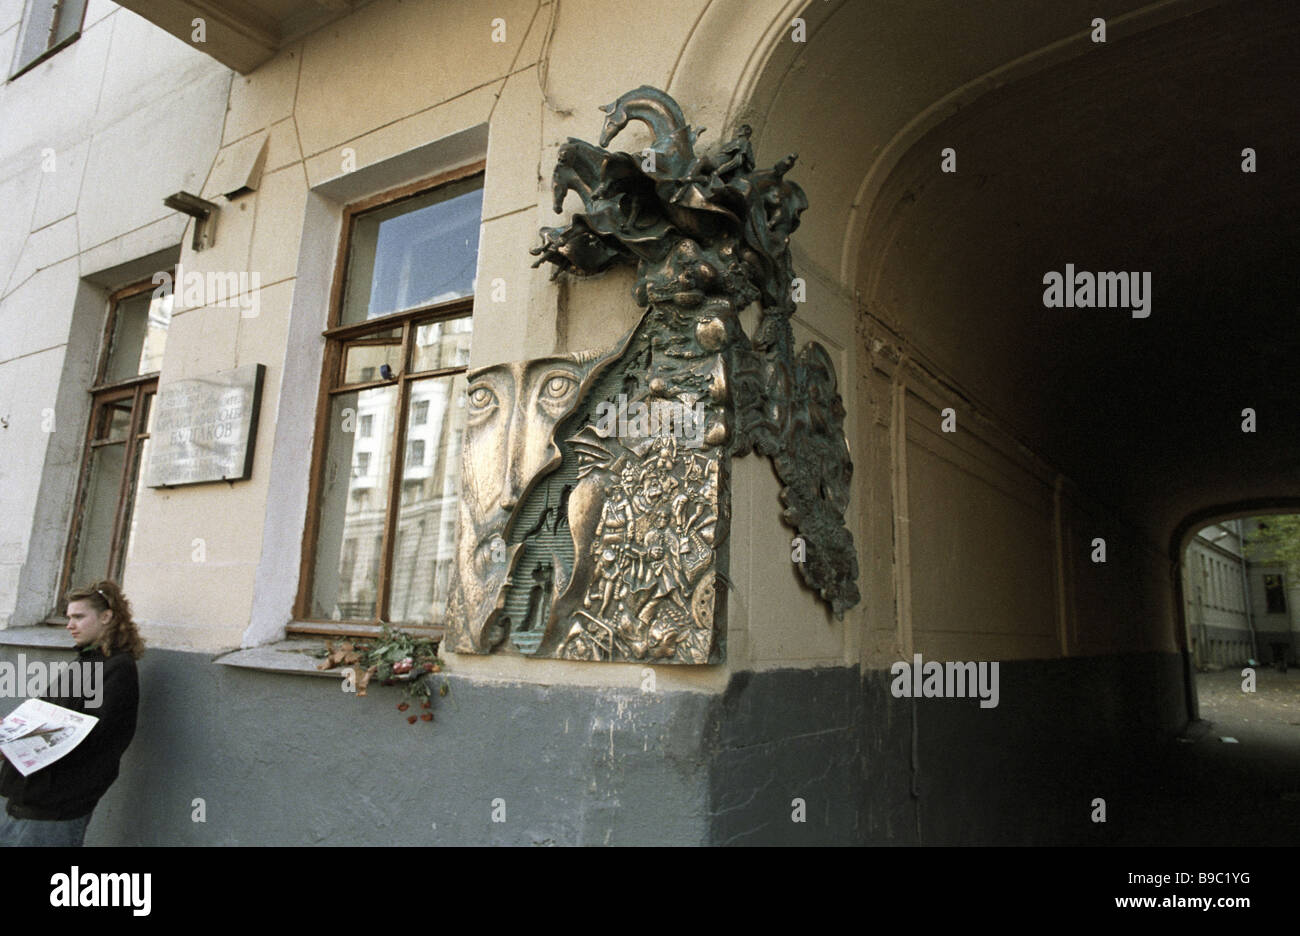 A bronze composition featuring characters from Mikhail Bulgakov s novel Master and Margarita mounted on the facade - Stock Image